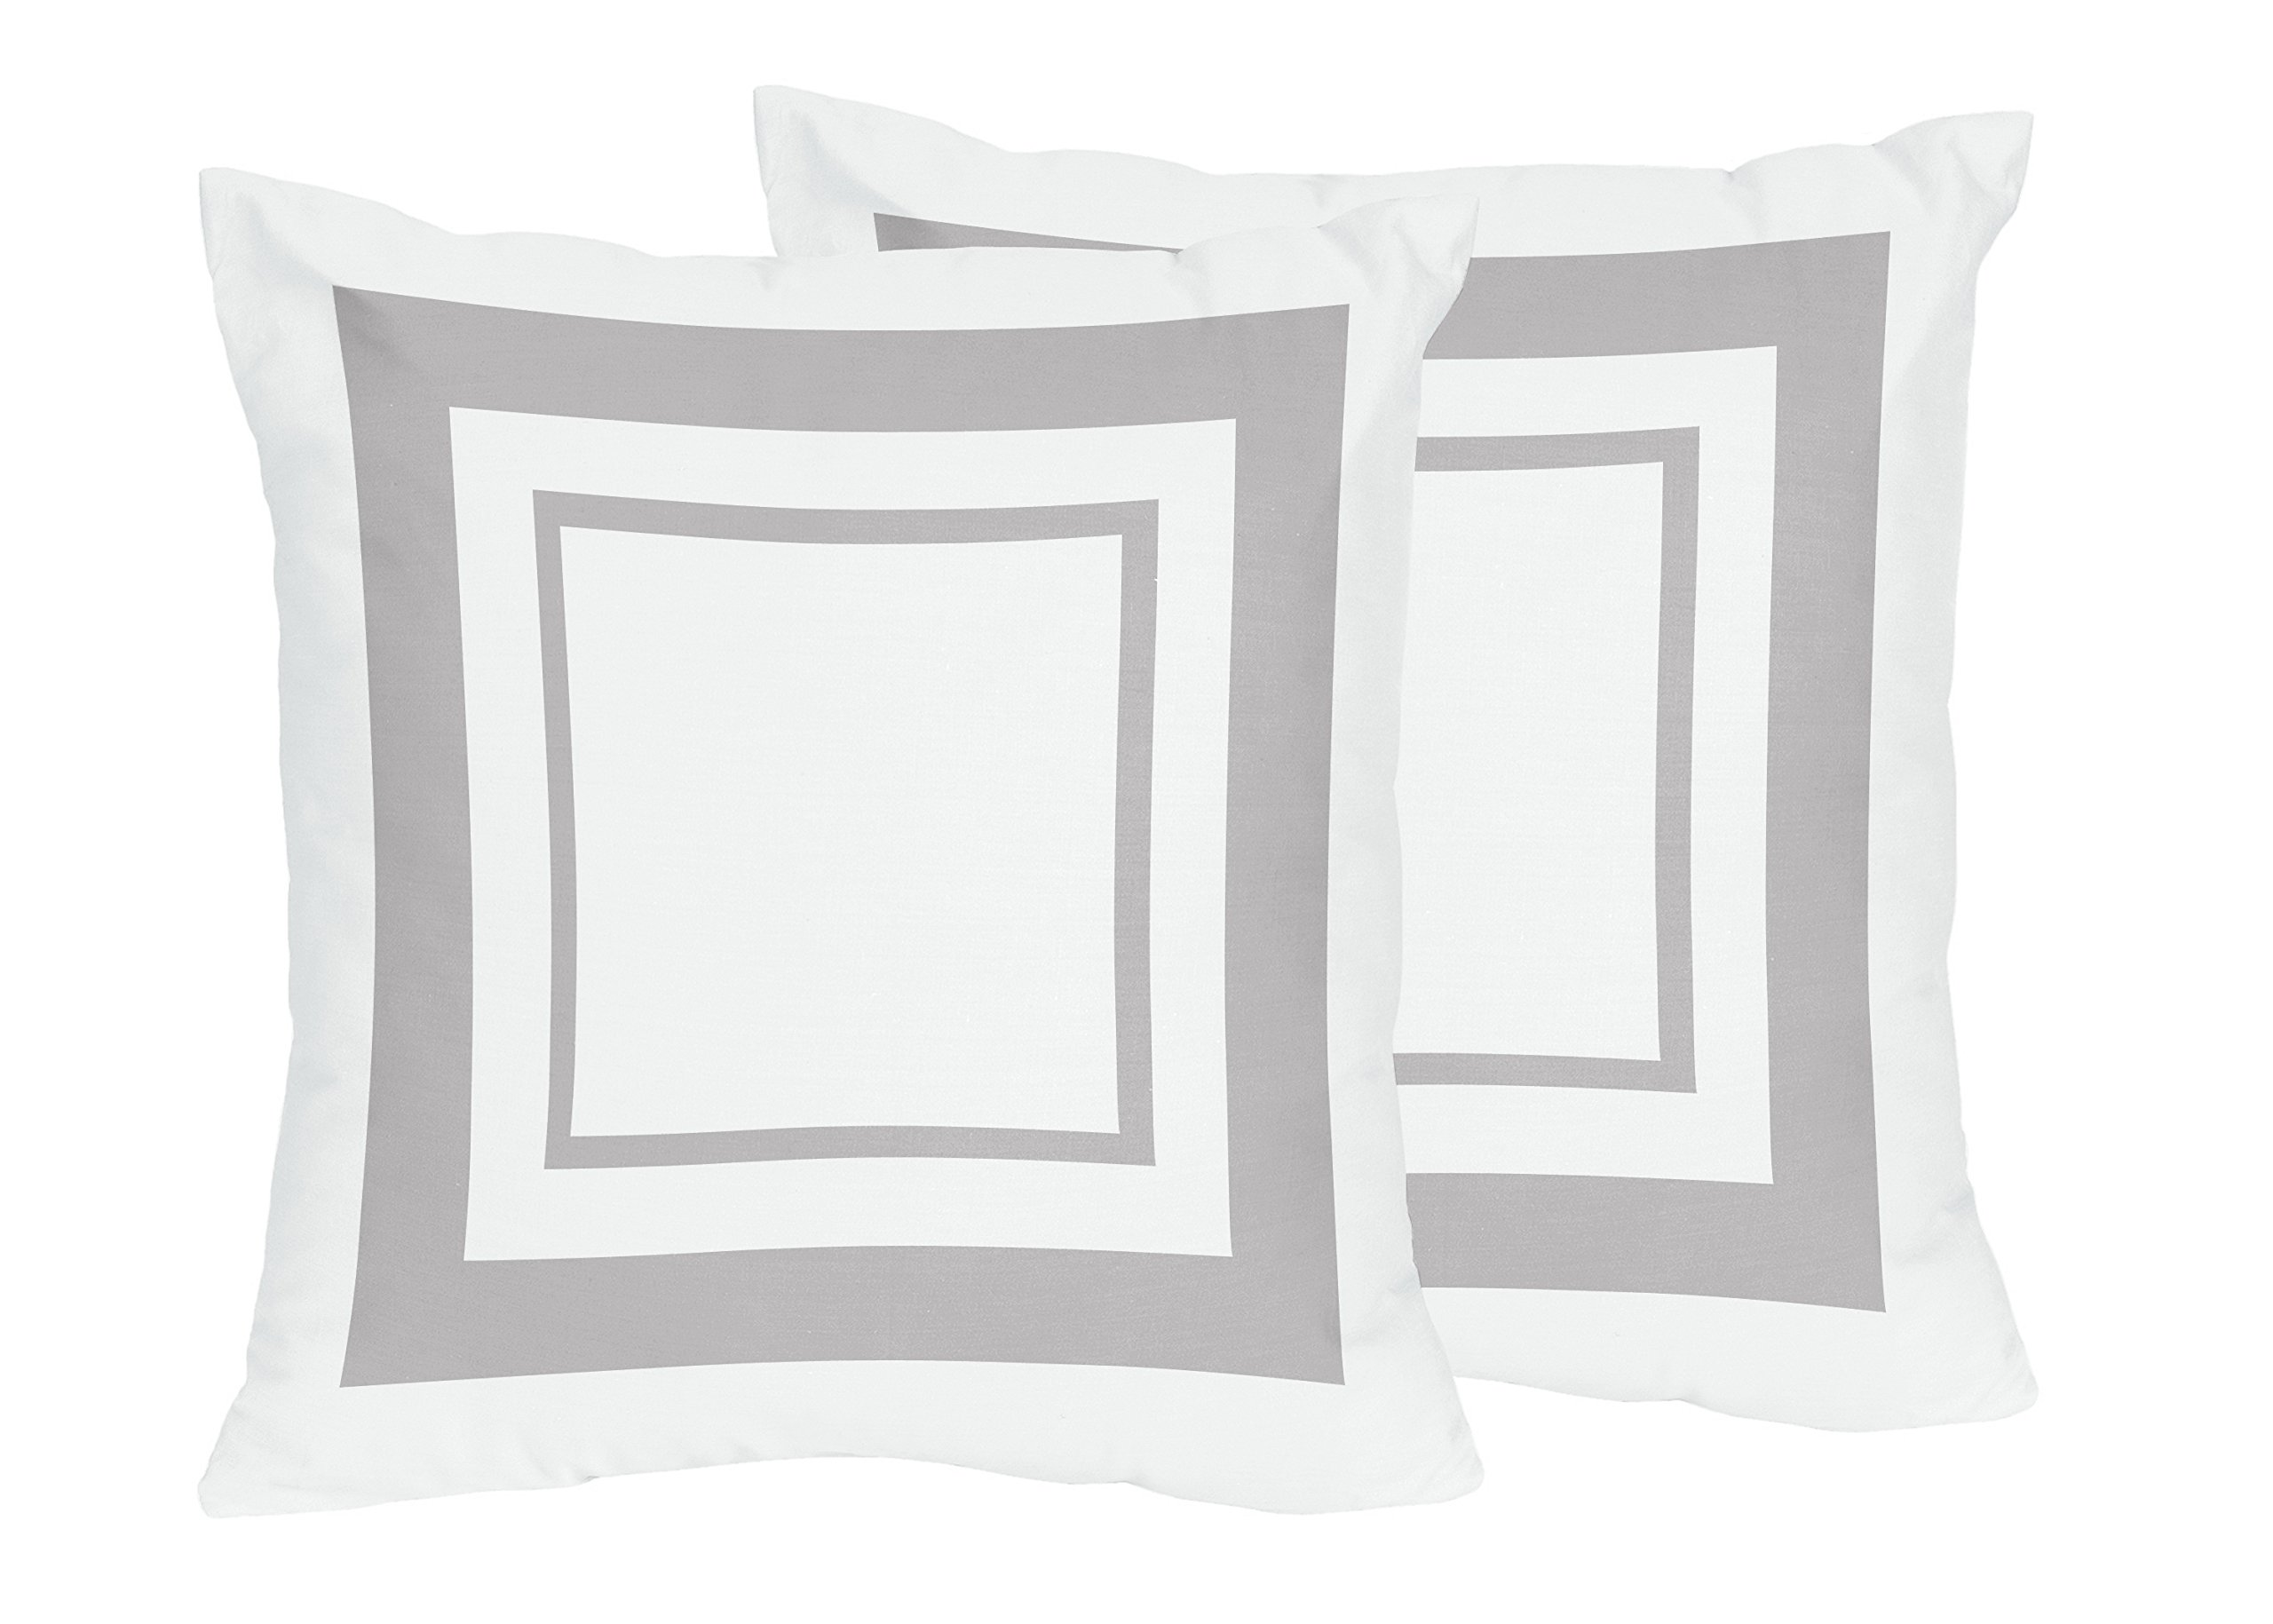 Sweet Jojo Designs 2-Piece Contemporary White and Gray Modern Hotel Decorative Accent Throw Pillows